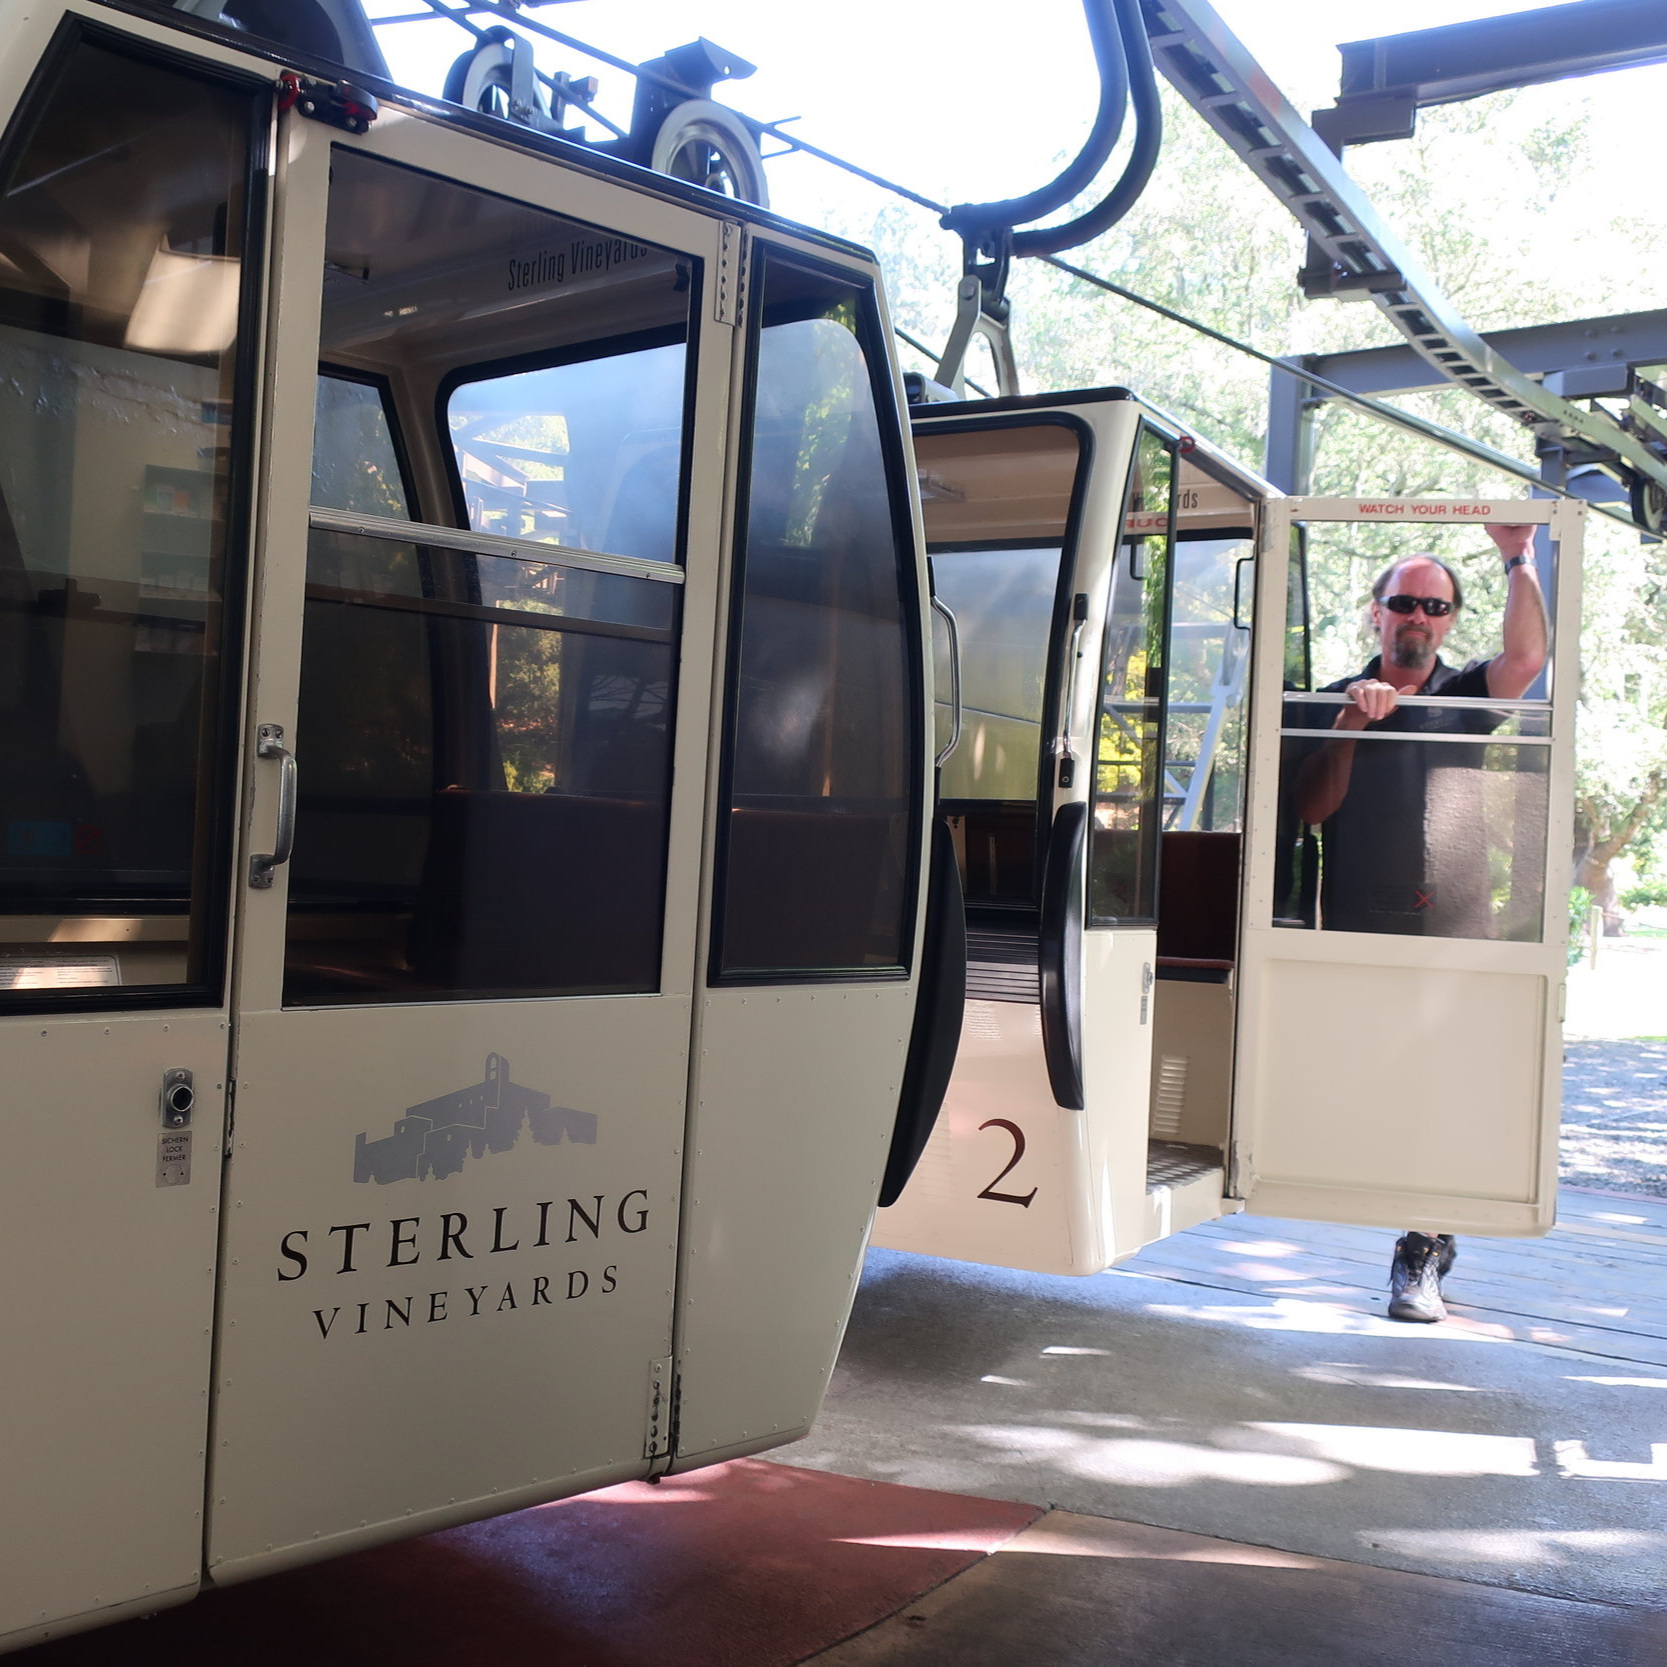 The famous Sterling Vineyards Tram